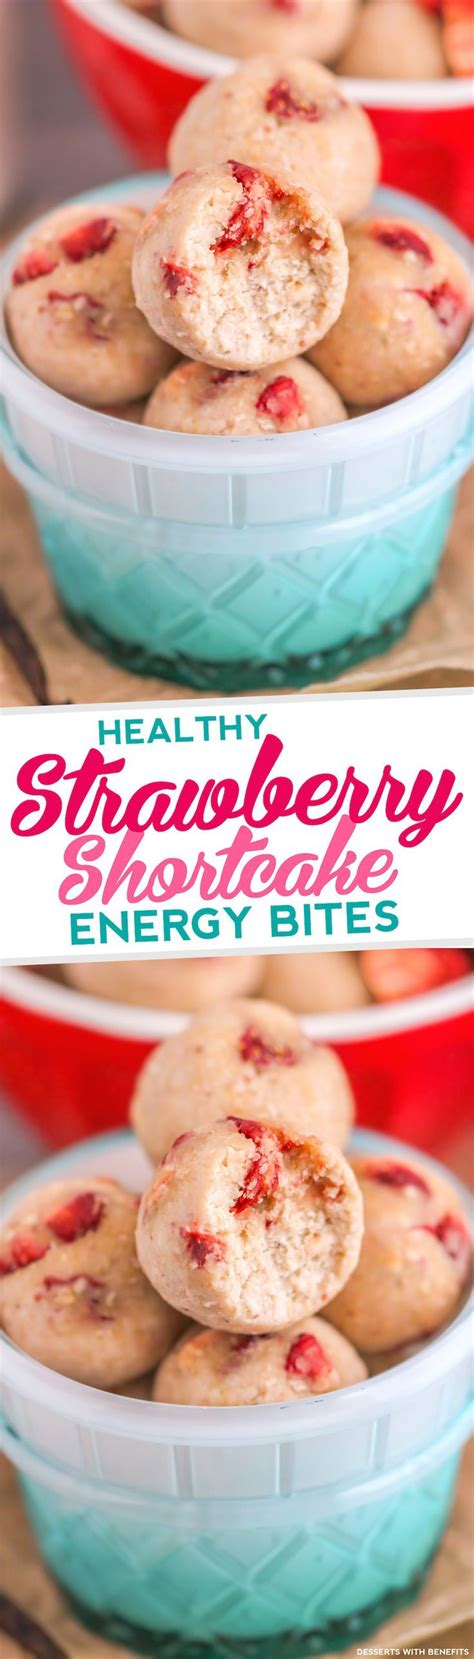 Bites Strawberry Falvor 150 best meal planning images on smoothie recipes clean meals and cooking food